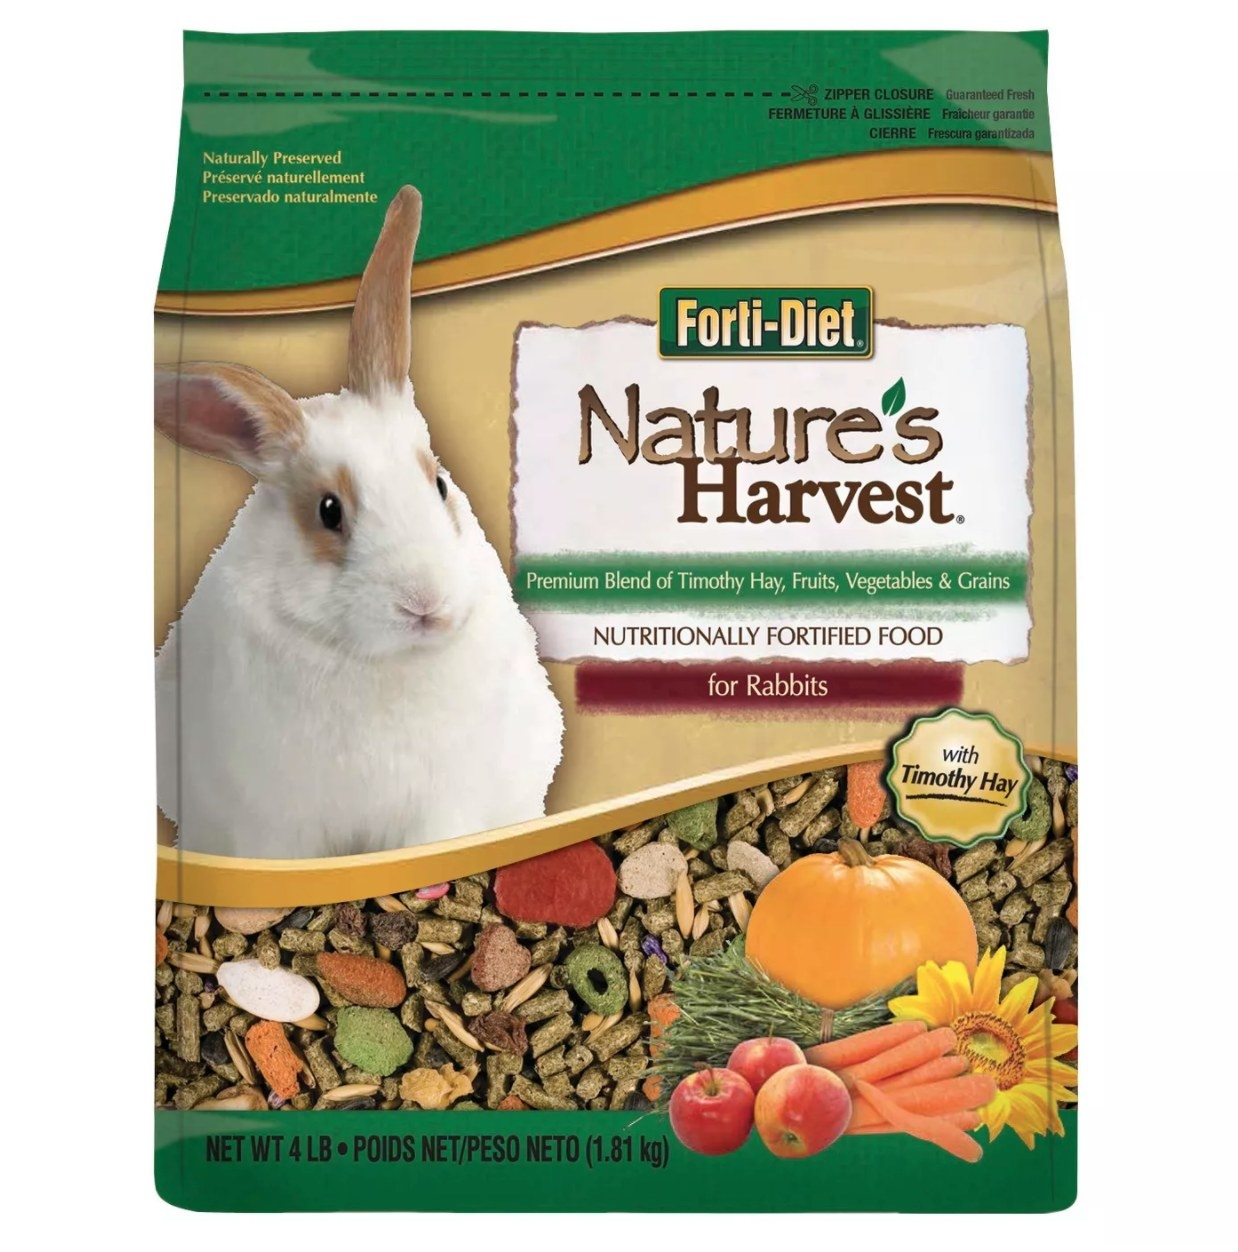 A bag of the small rabbit food